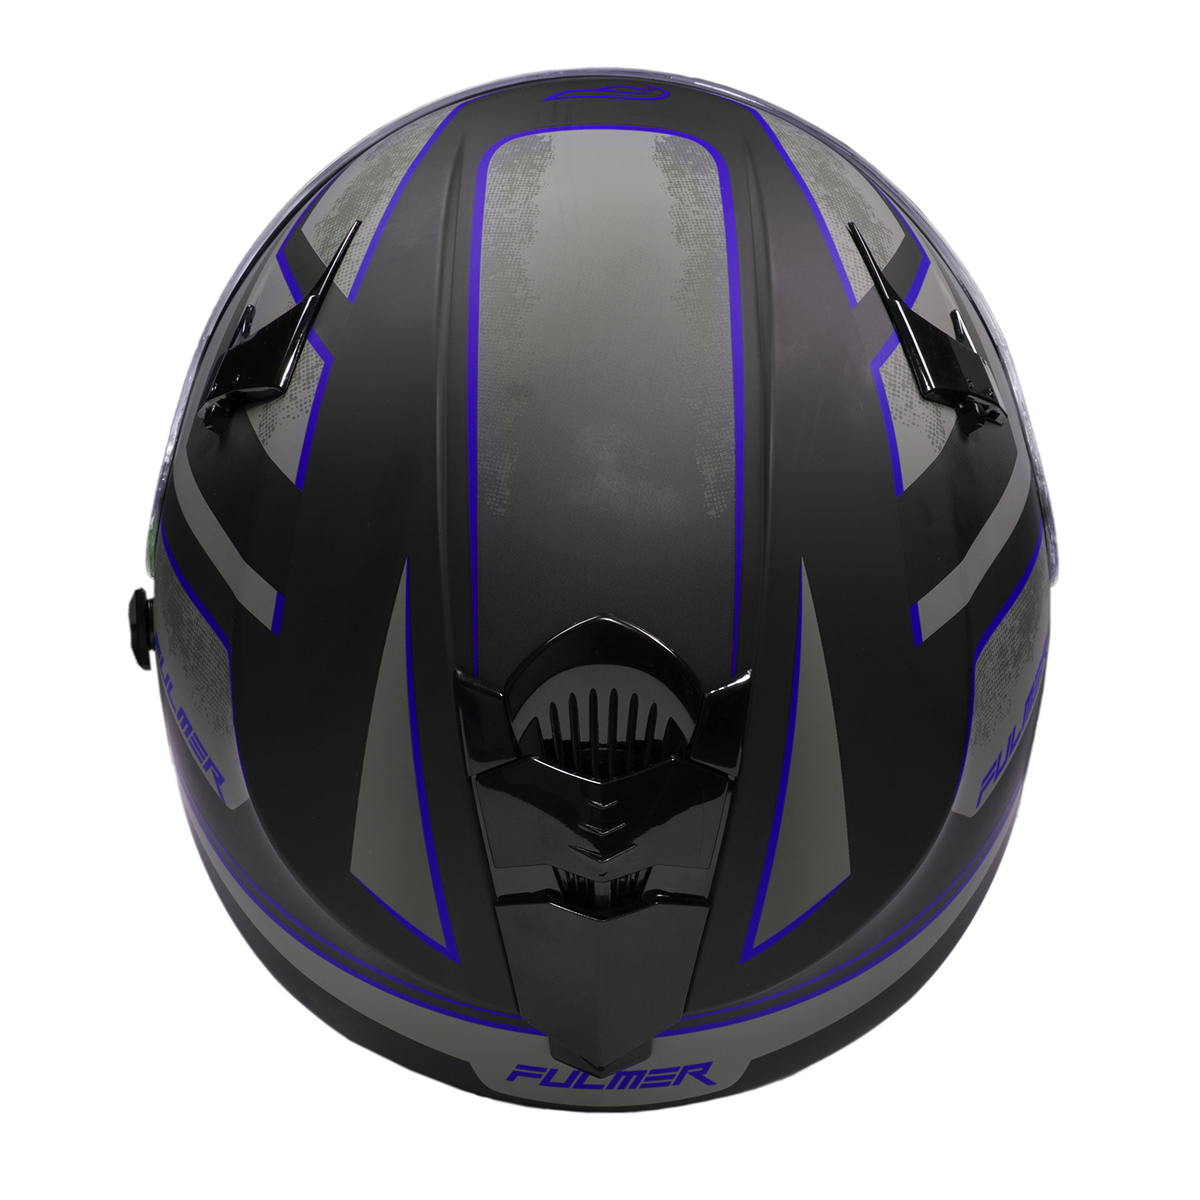 Fulmer-Adult-Full-Face-Motorcycle-Helmet-151-Pulse-DOT-Approved-Street-Bike thumbnail 10